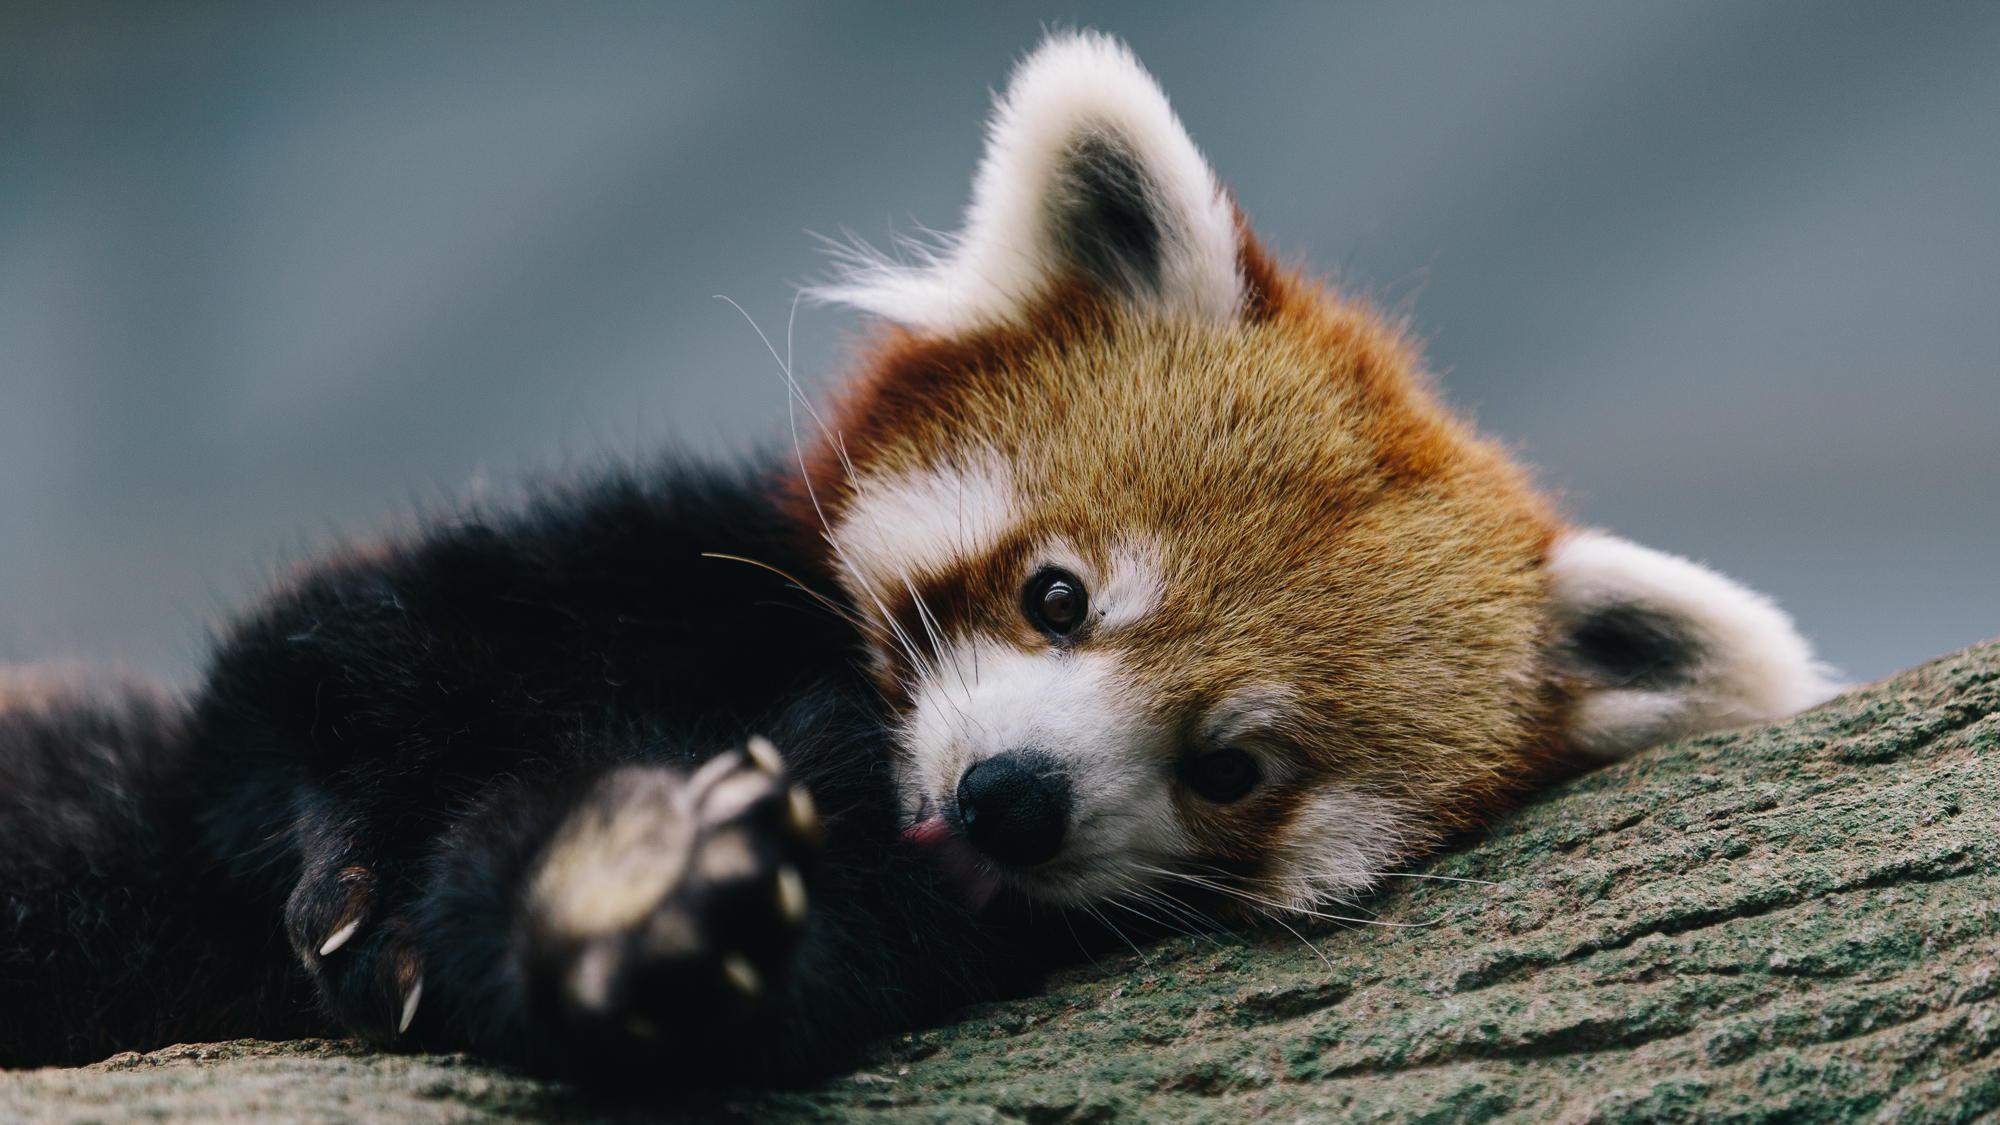 Red Panda Wallpaper 1920x1080